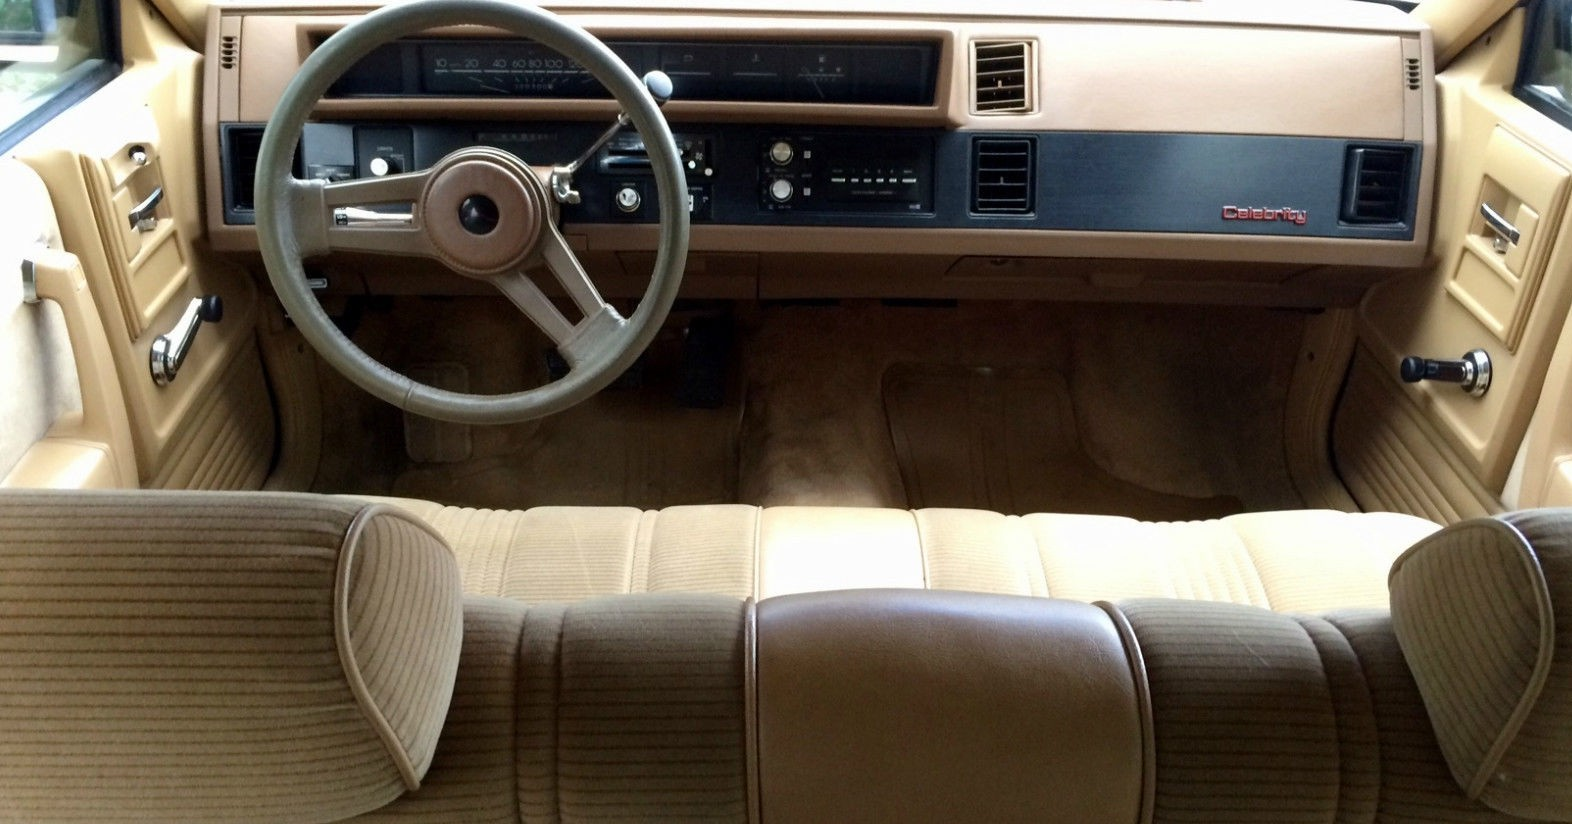 1986 CHEV CELEBRITY WAGON - Classic cars for sale